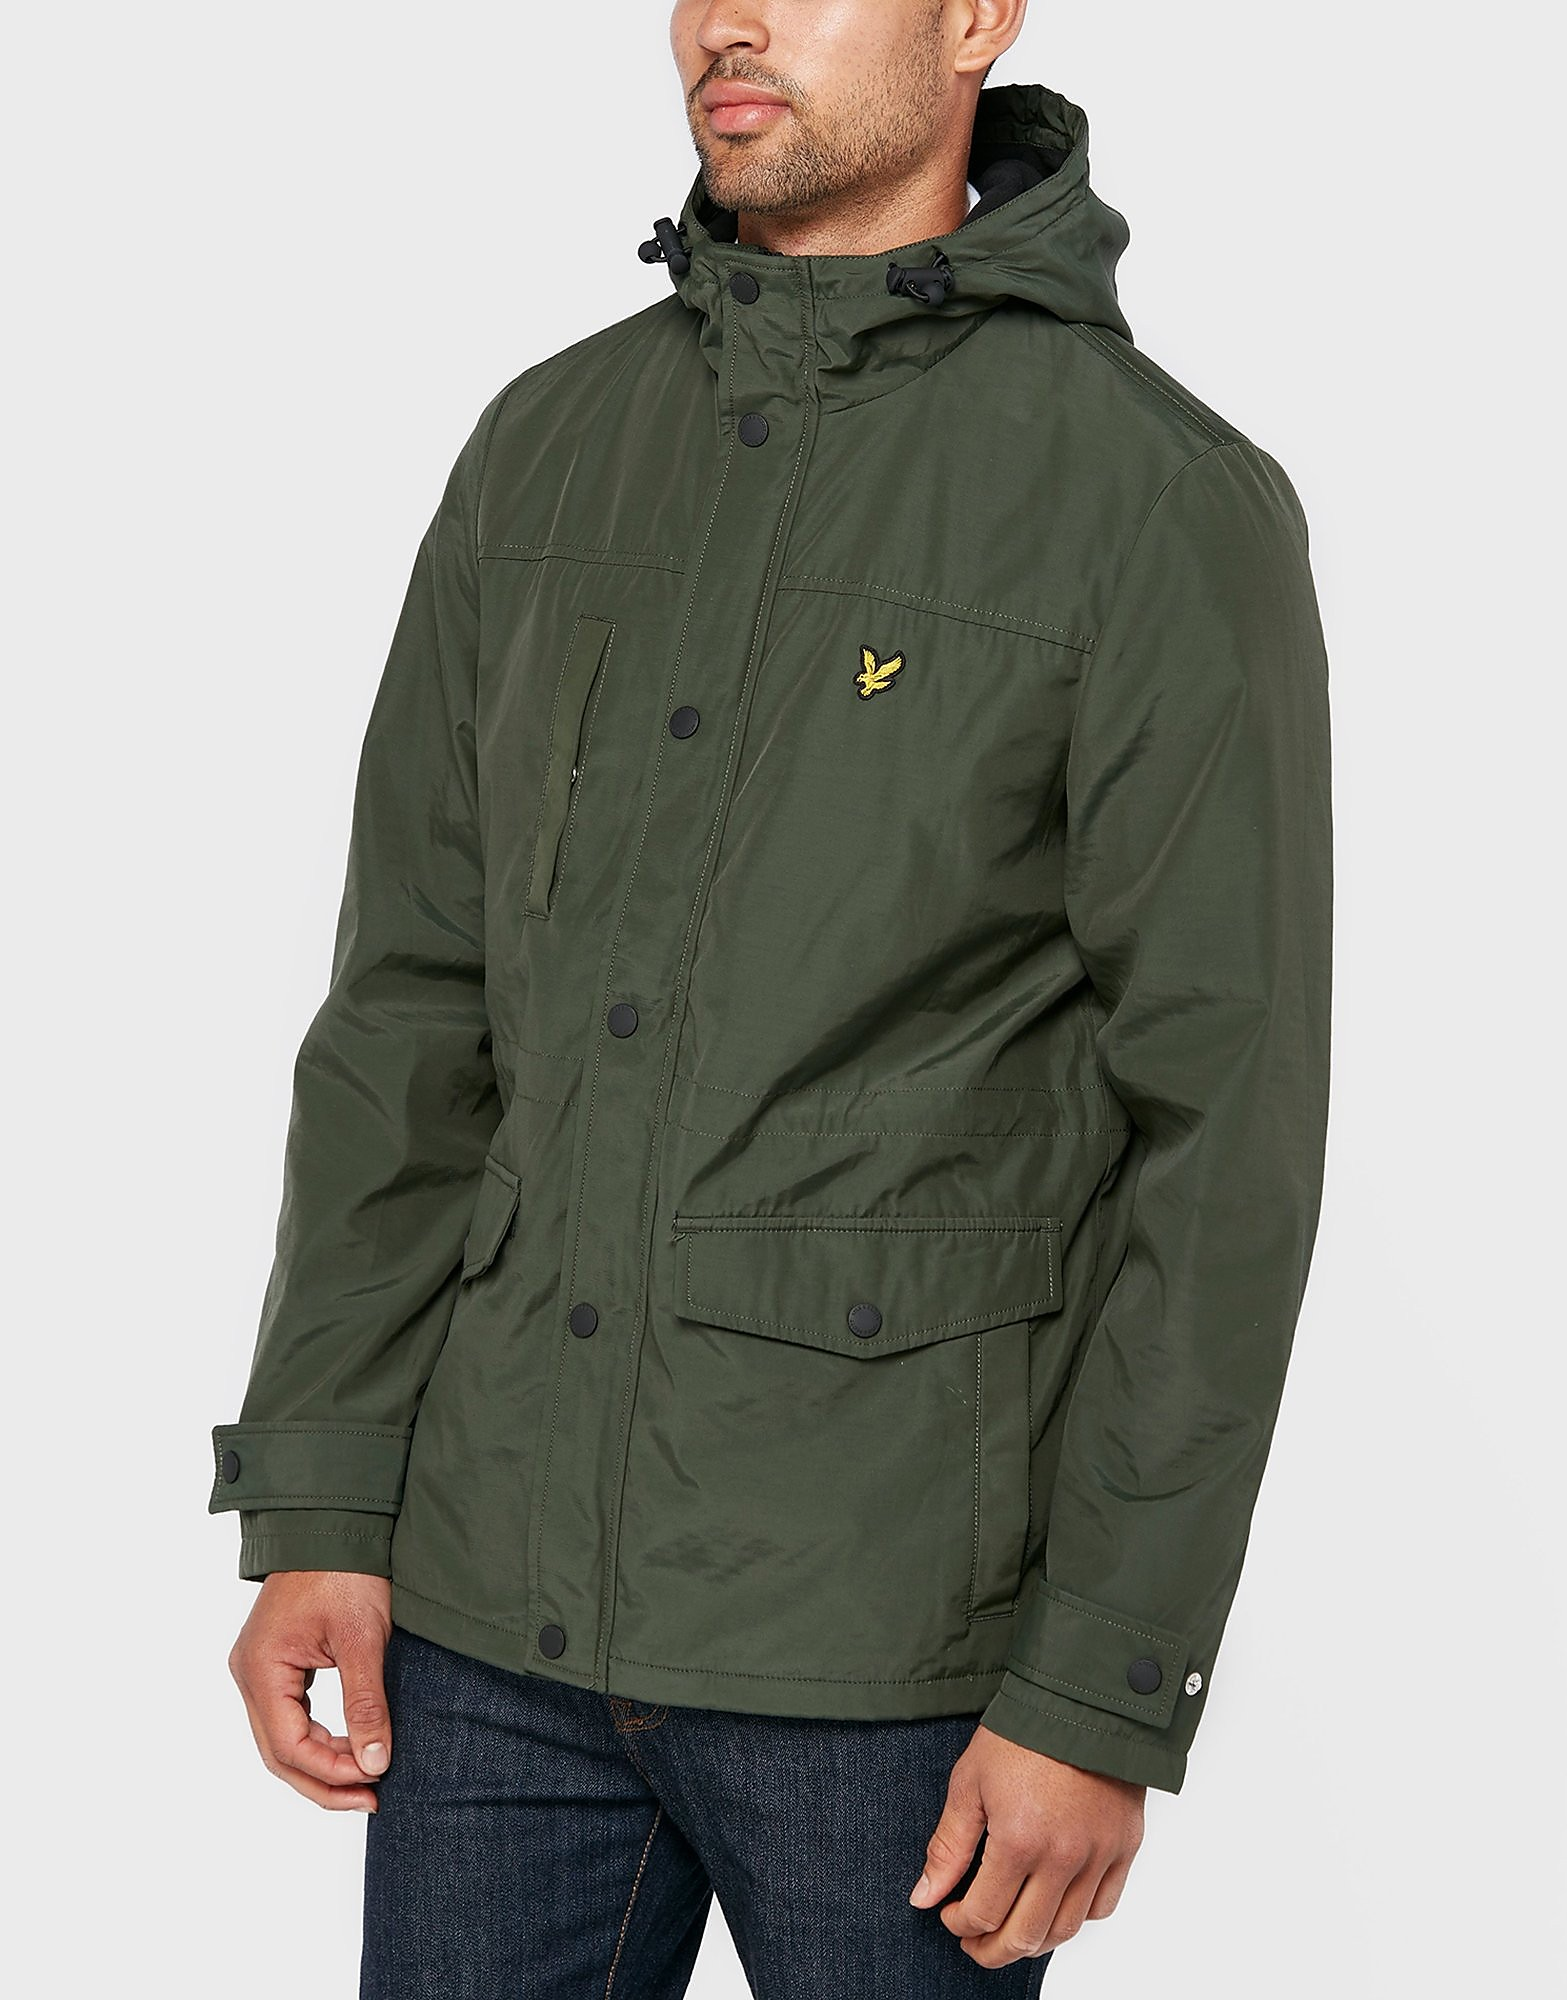 Lyle & Scott Fleece Line Lightweight Jacket